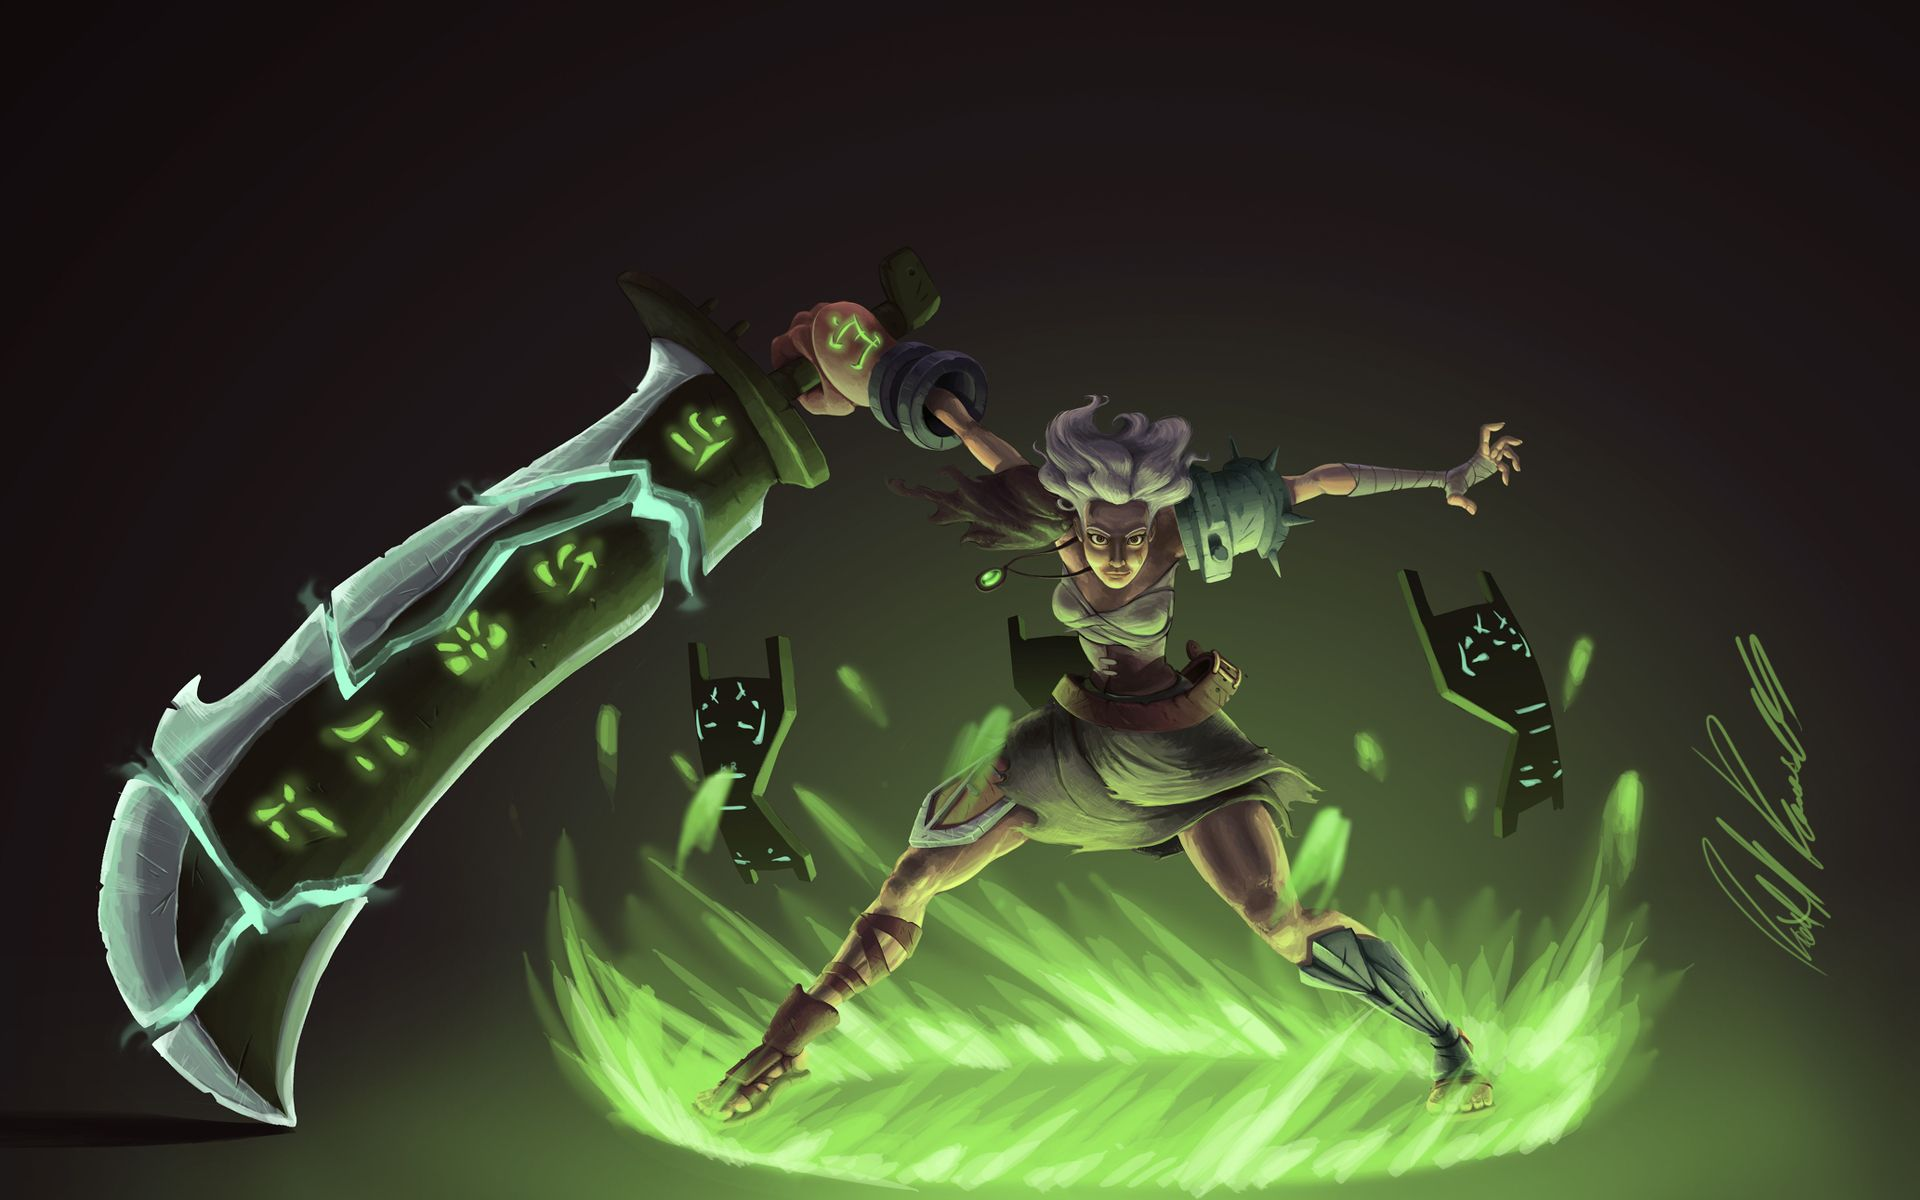 view, download, comment, and rate this 1920x1200 riven wallpaper